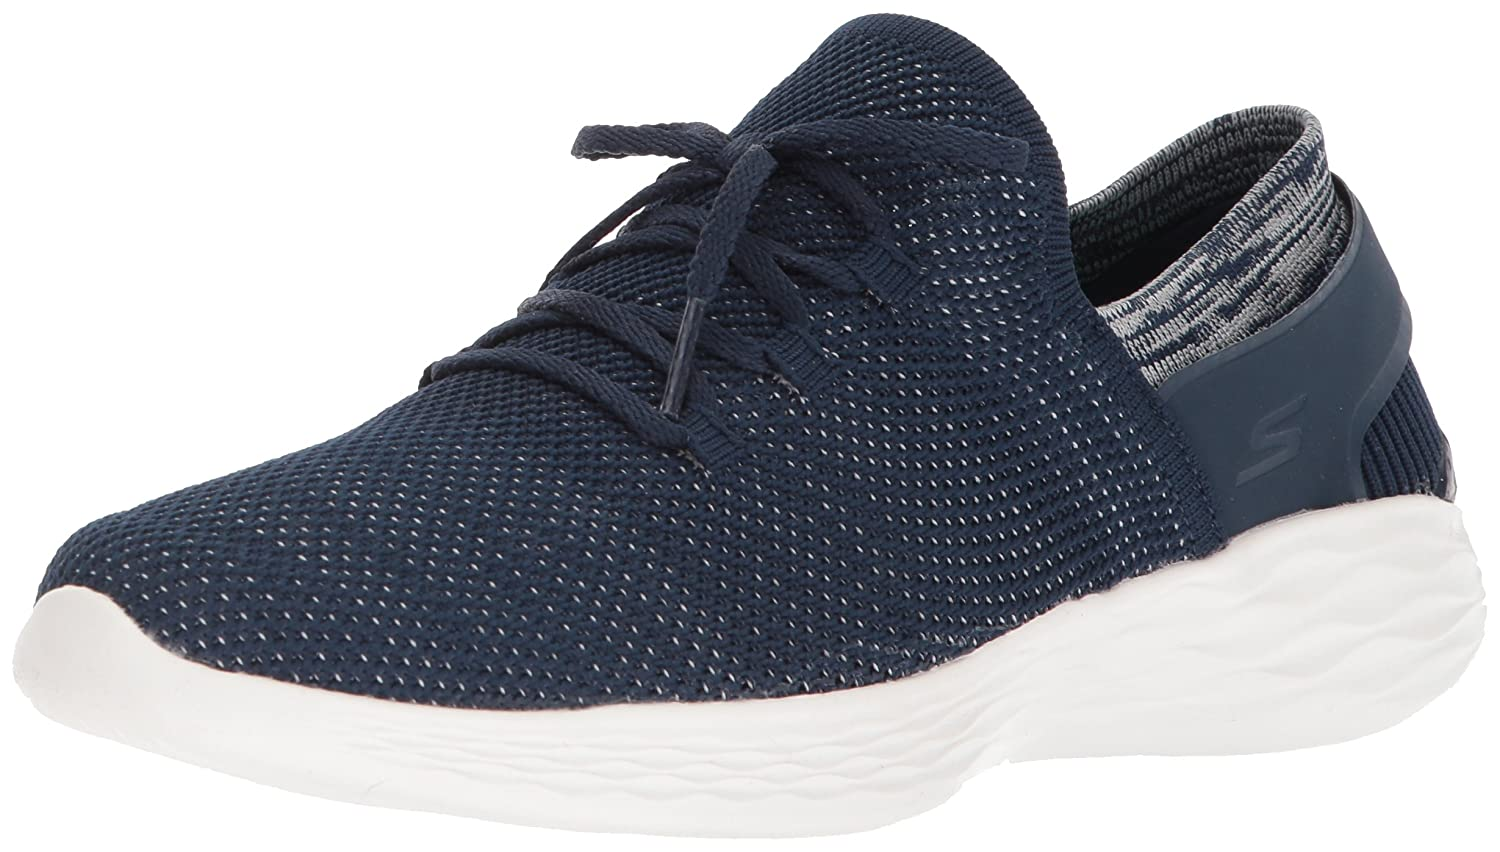 Skechers Women's You-14960 Sneaker B072K7MWPG 10 B(M) US|Navy/White